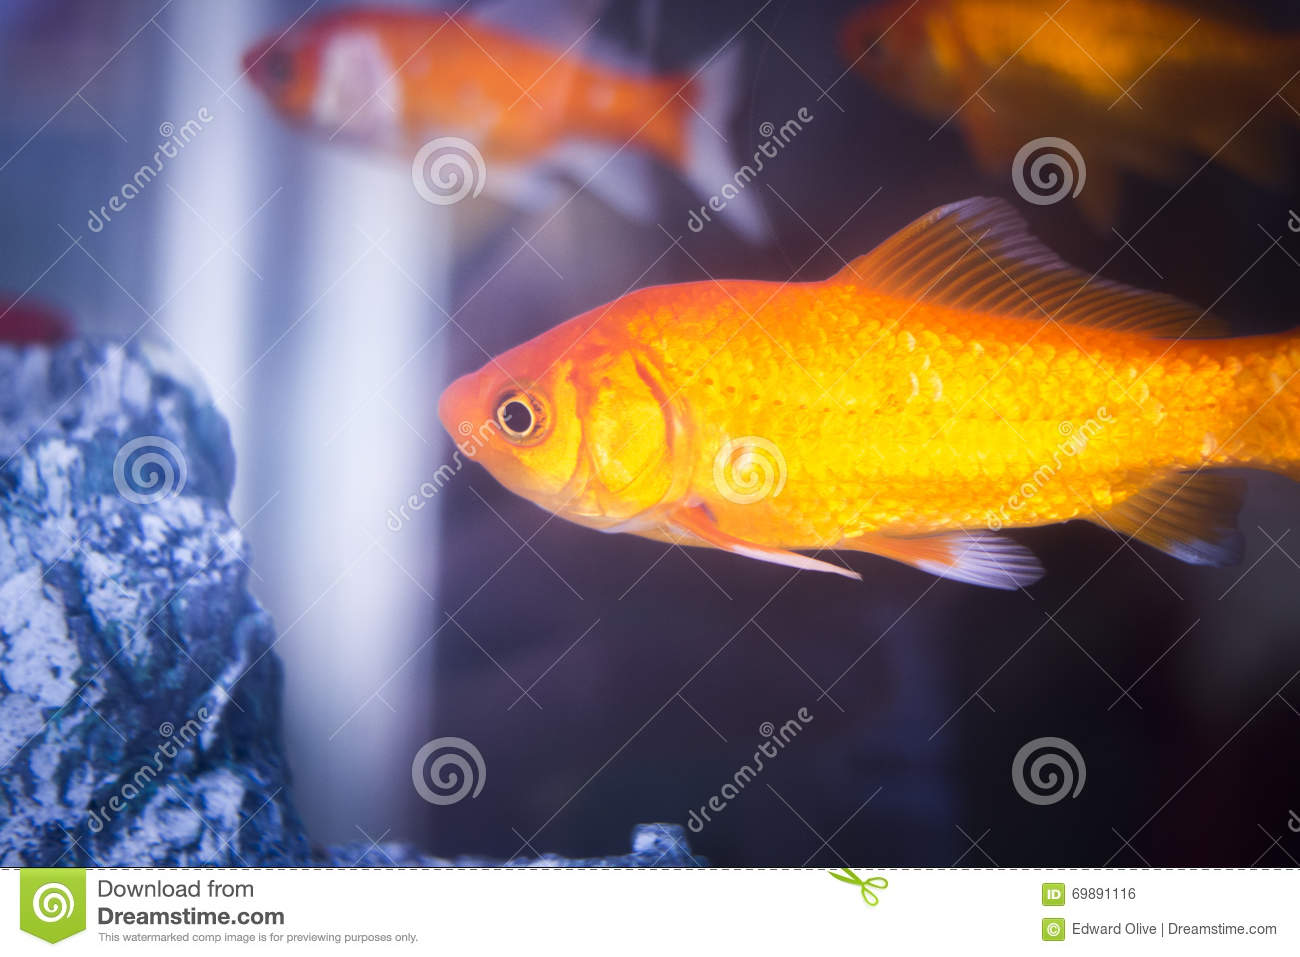 Tropical fish swimming in a tank royalty free stock image for Dream of fish swimming